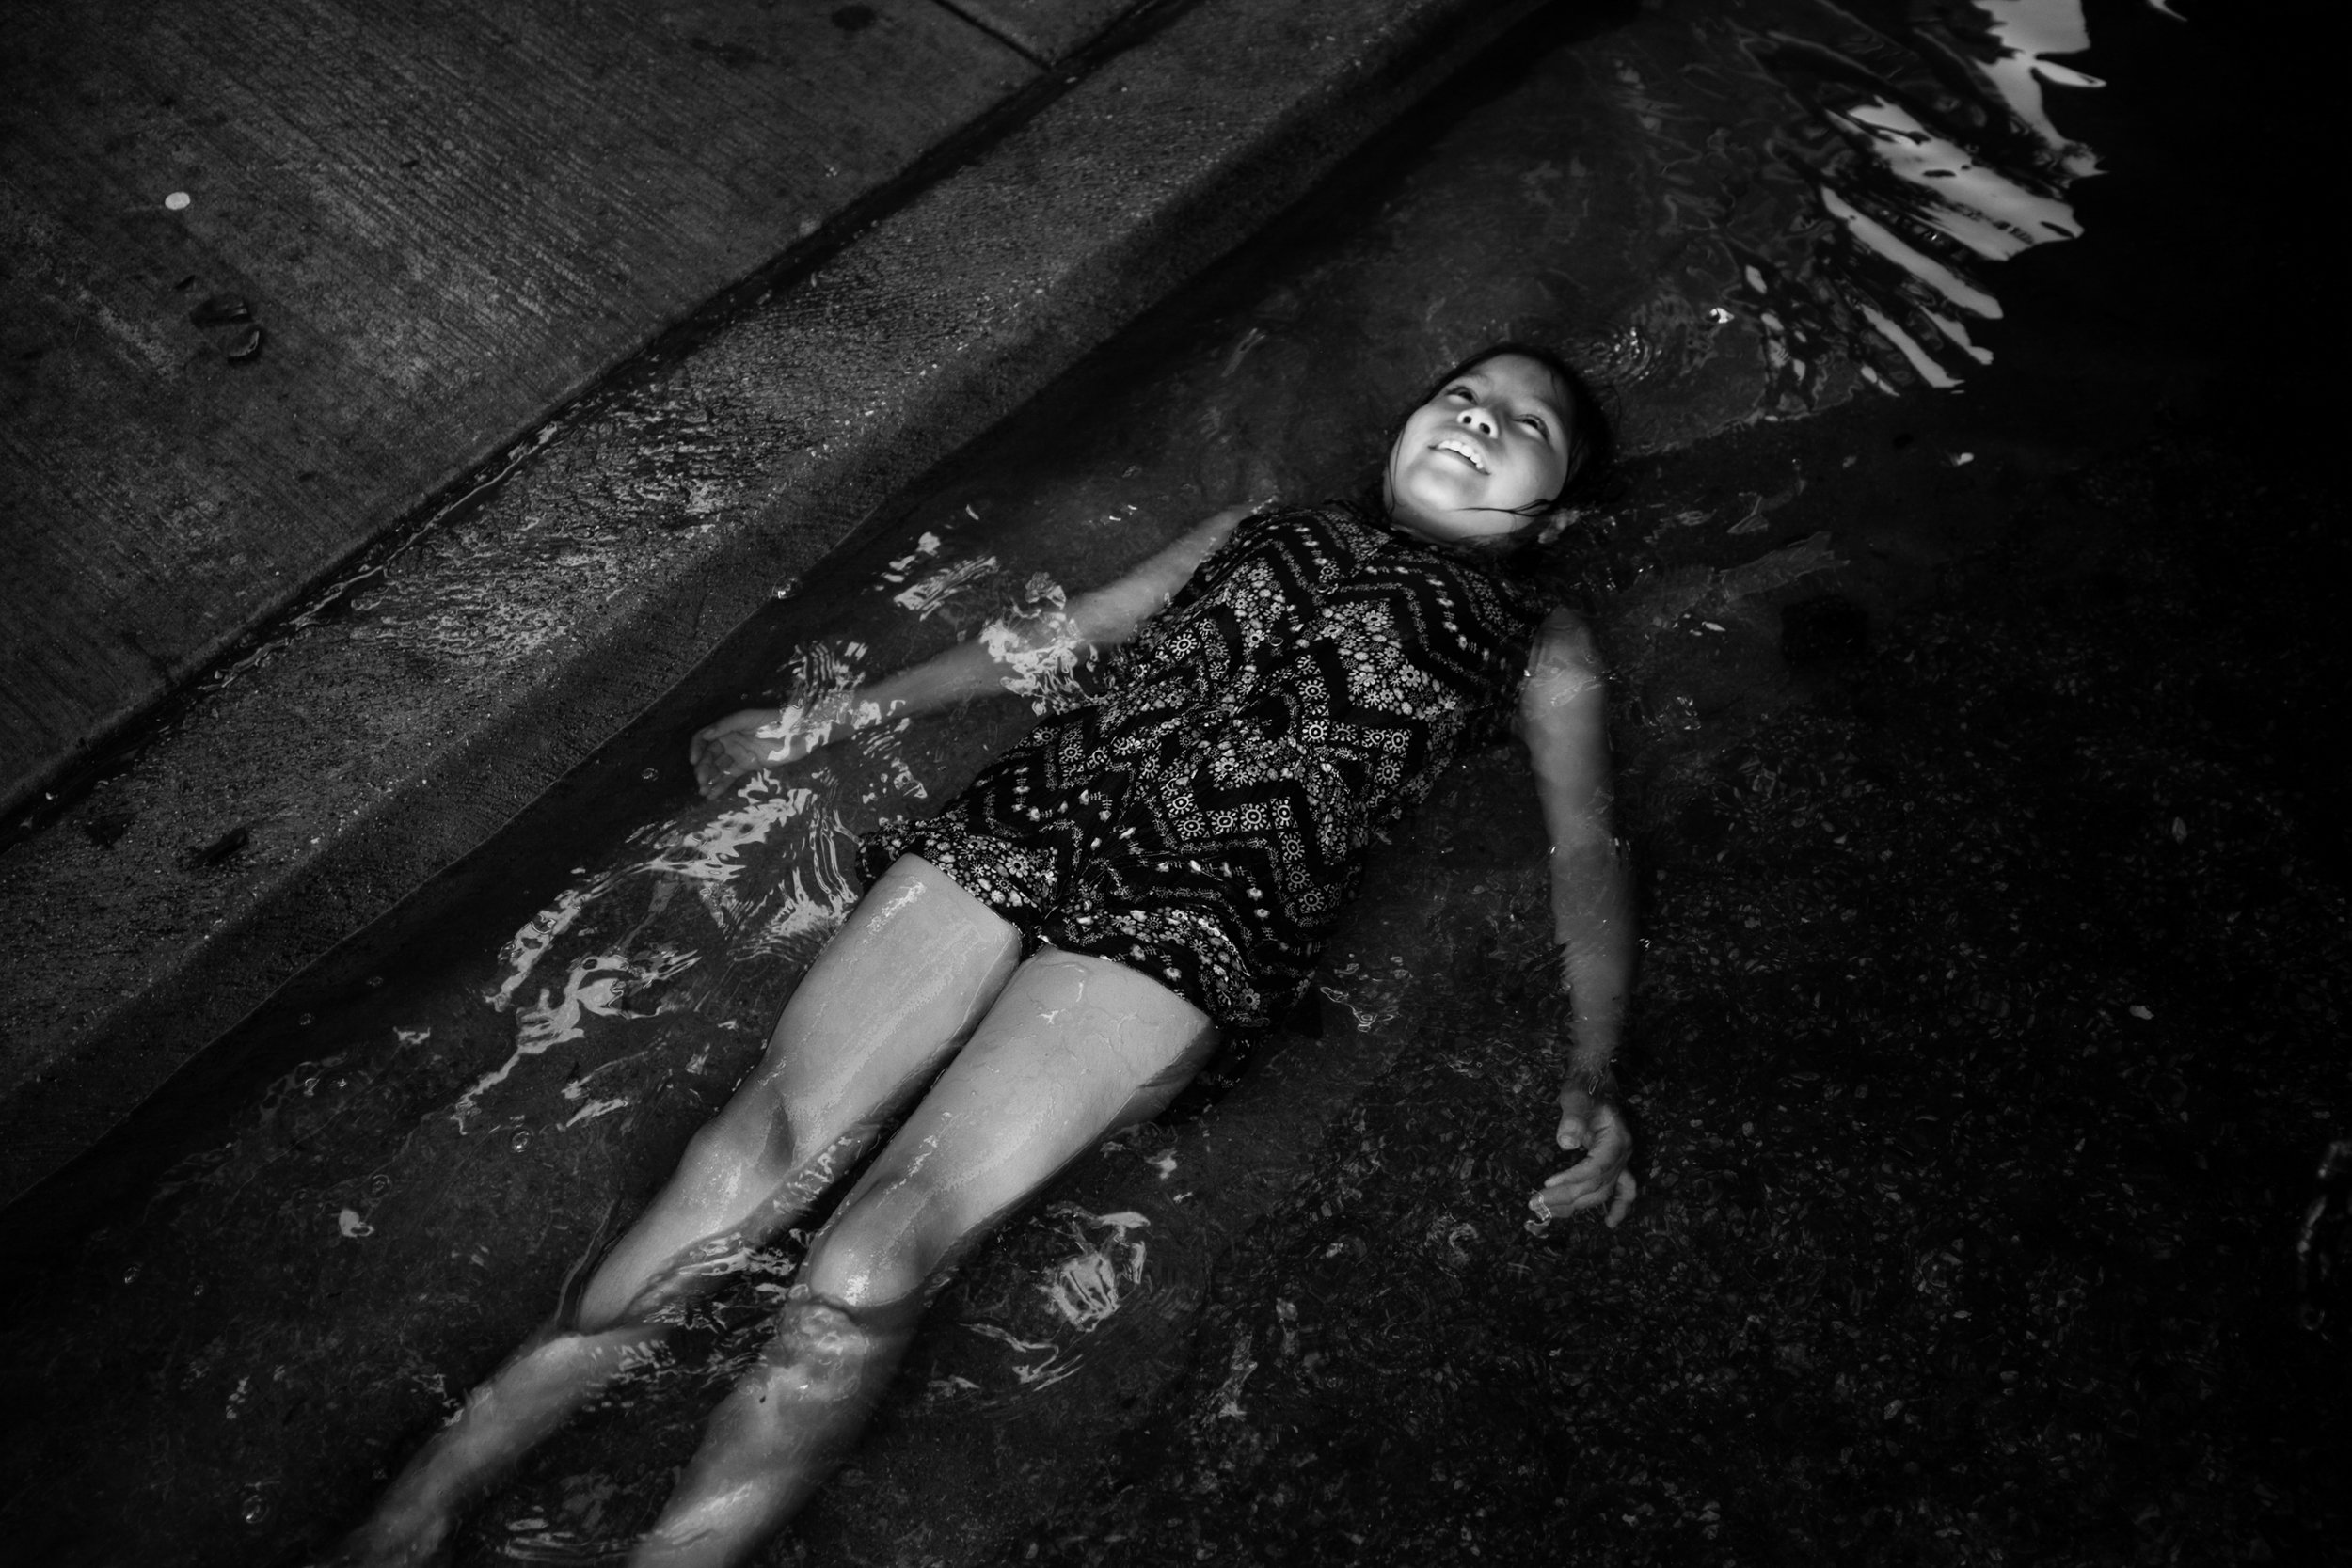 A child is taken by the current of a street filled with water during a hot summer day in Pilsen. A few fire hydrants in a block radius are usually opened by the neighborhoods gang members, after, children and families call gather to take advantage of the cool water. (Sebastián Hidalgo)